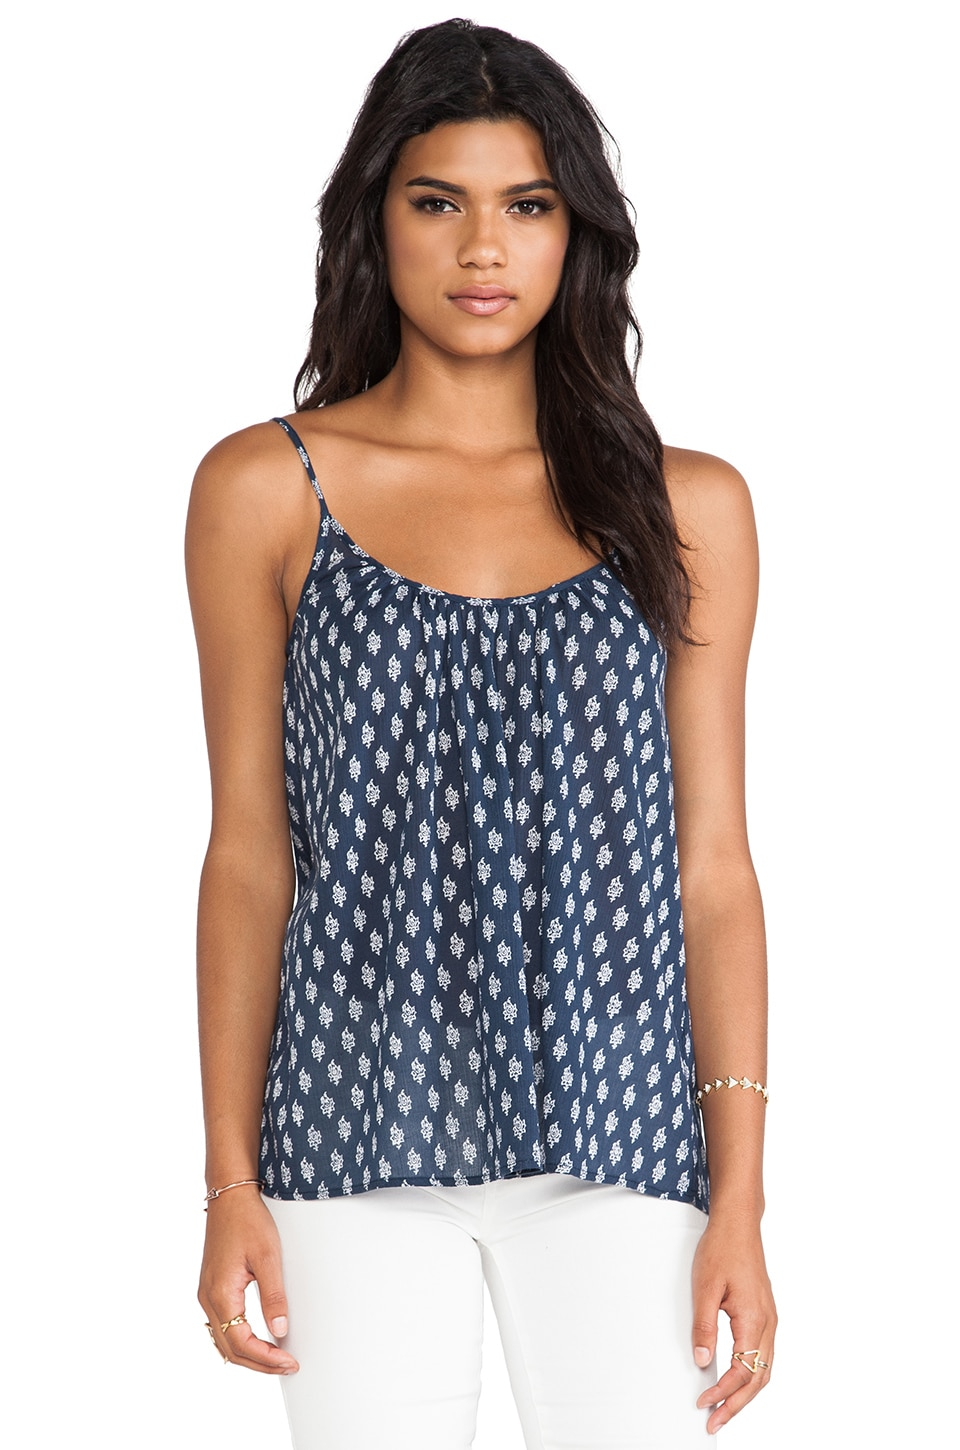 Soft Joie Sparkle Cami in Indigo Blue & Porcelain